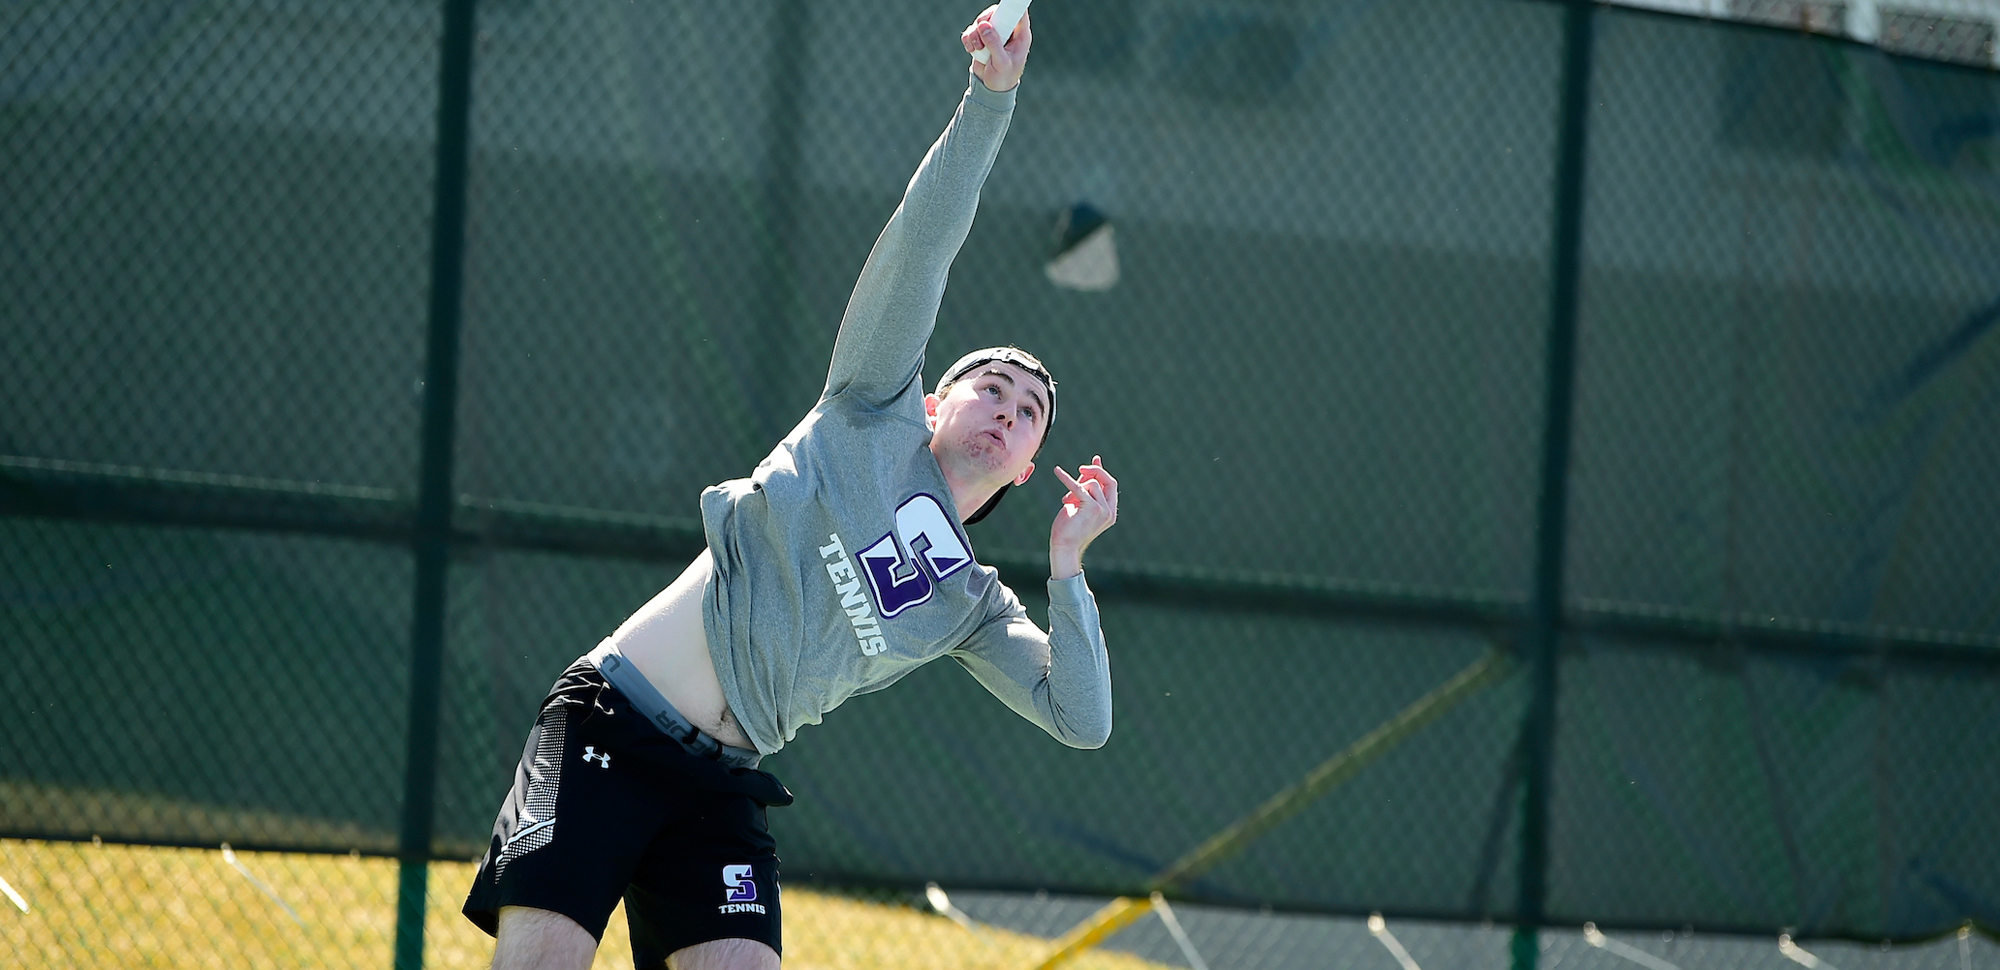 Junior Tarquin McGurrin advanced to the second round at the ITA Northeast Region Championships over the weekend.